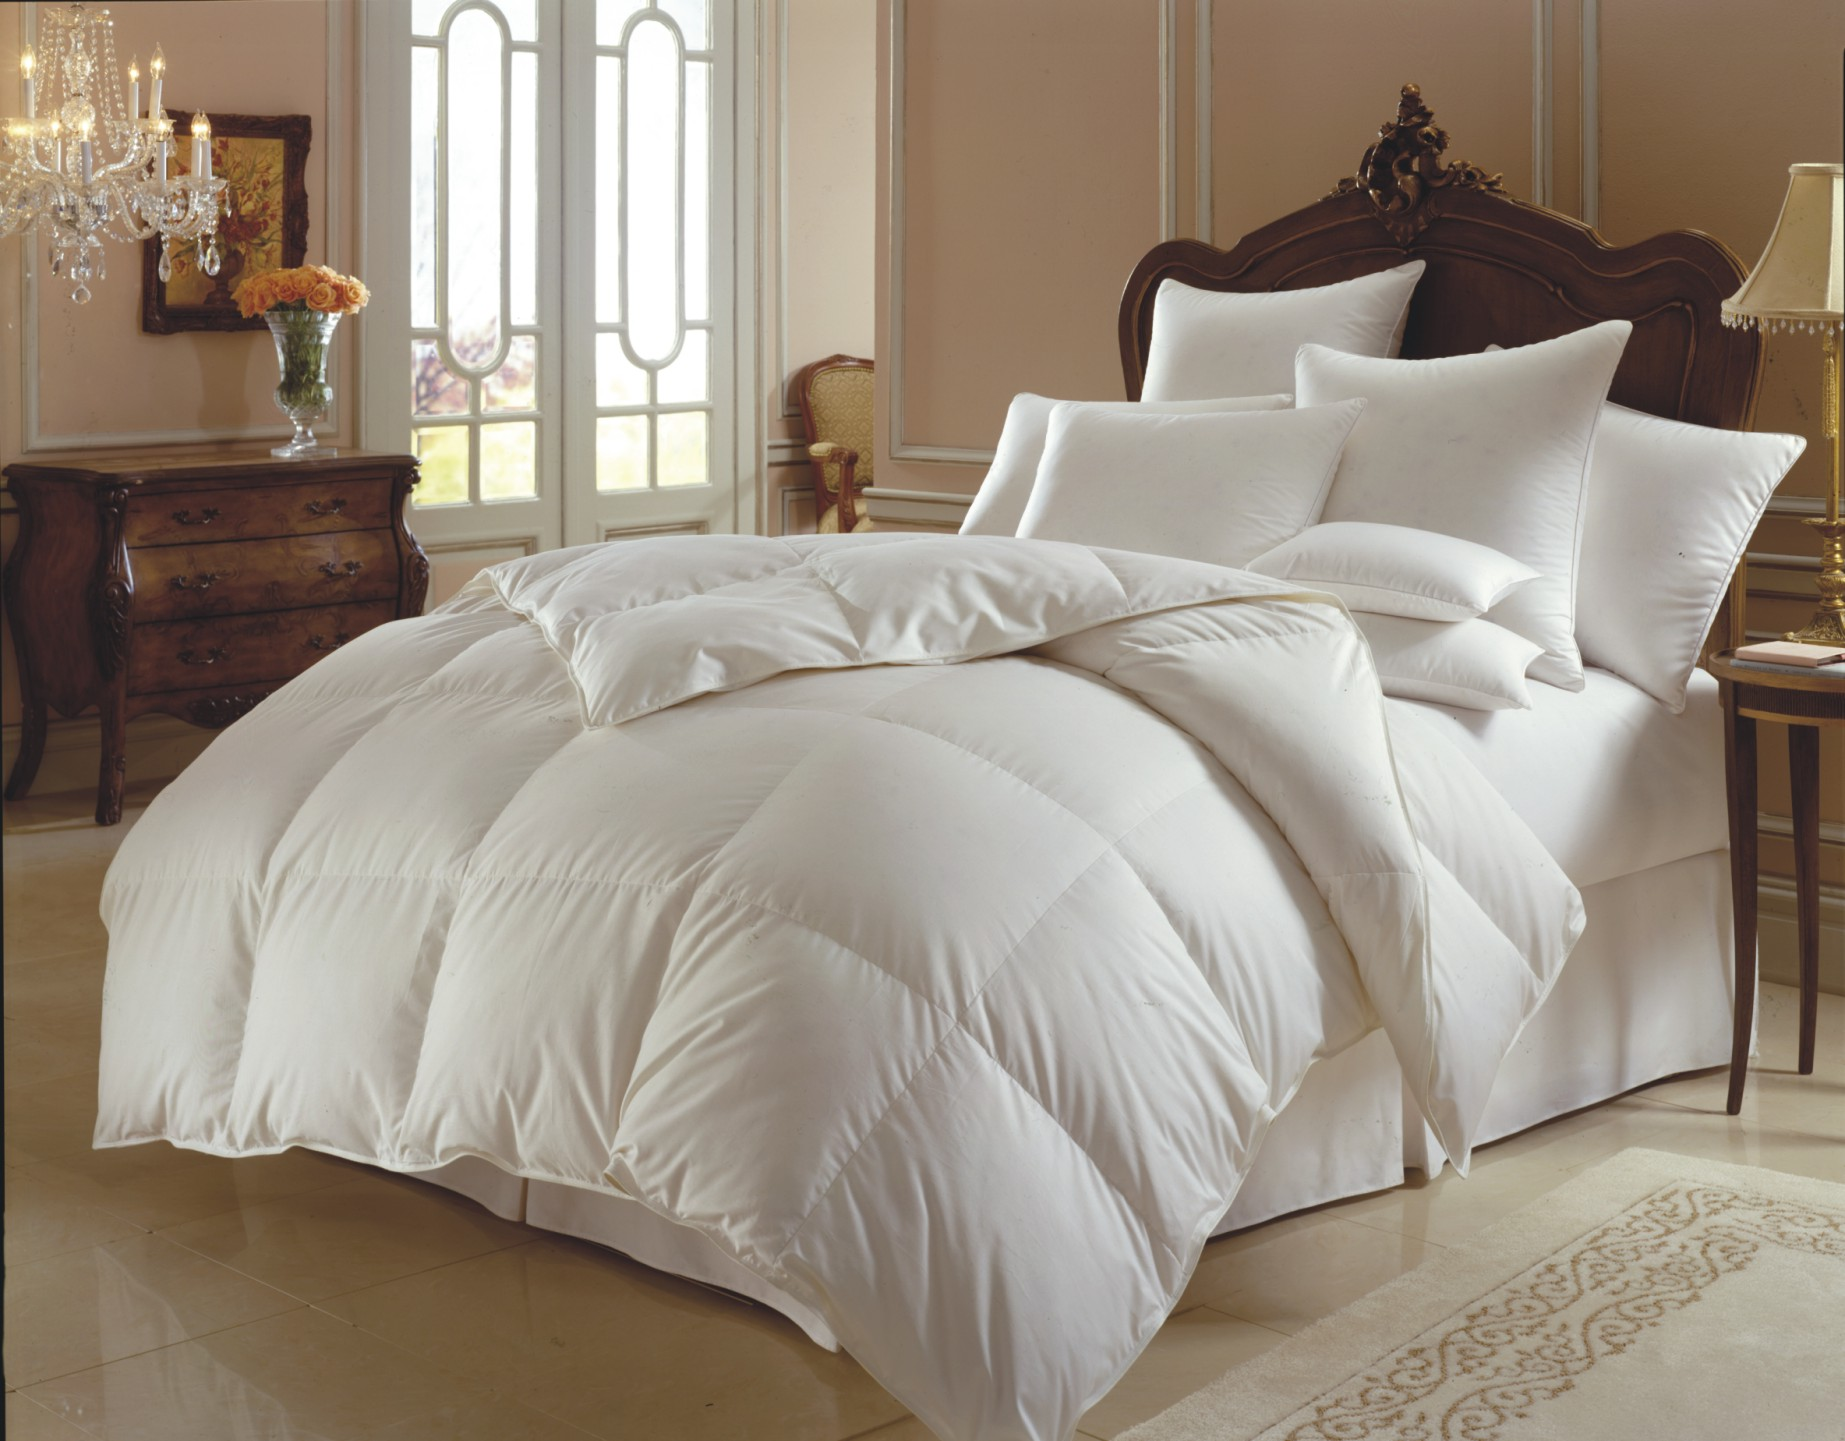 The Best Goose Down Comforters Jan 2018Guide and Reviews